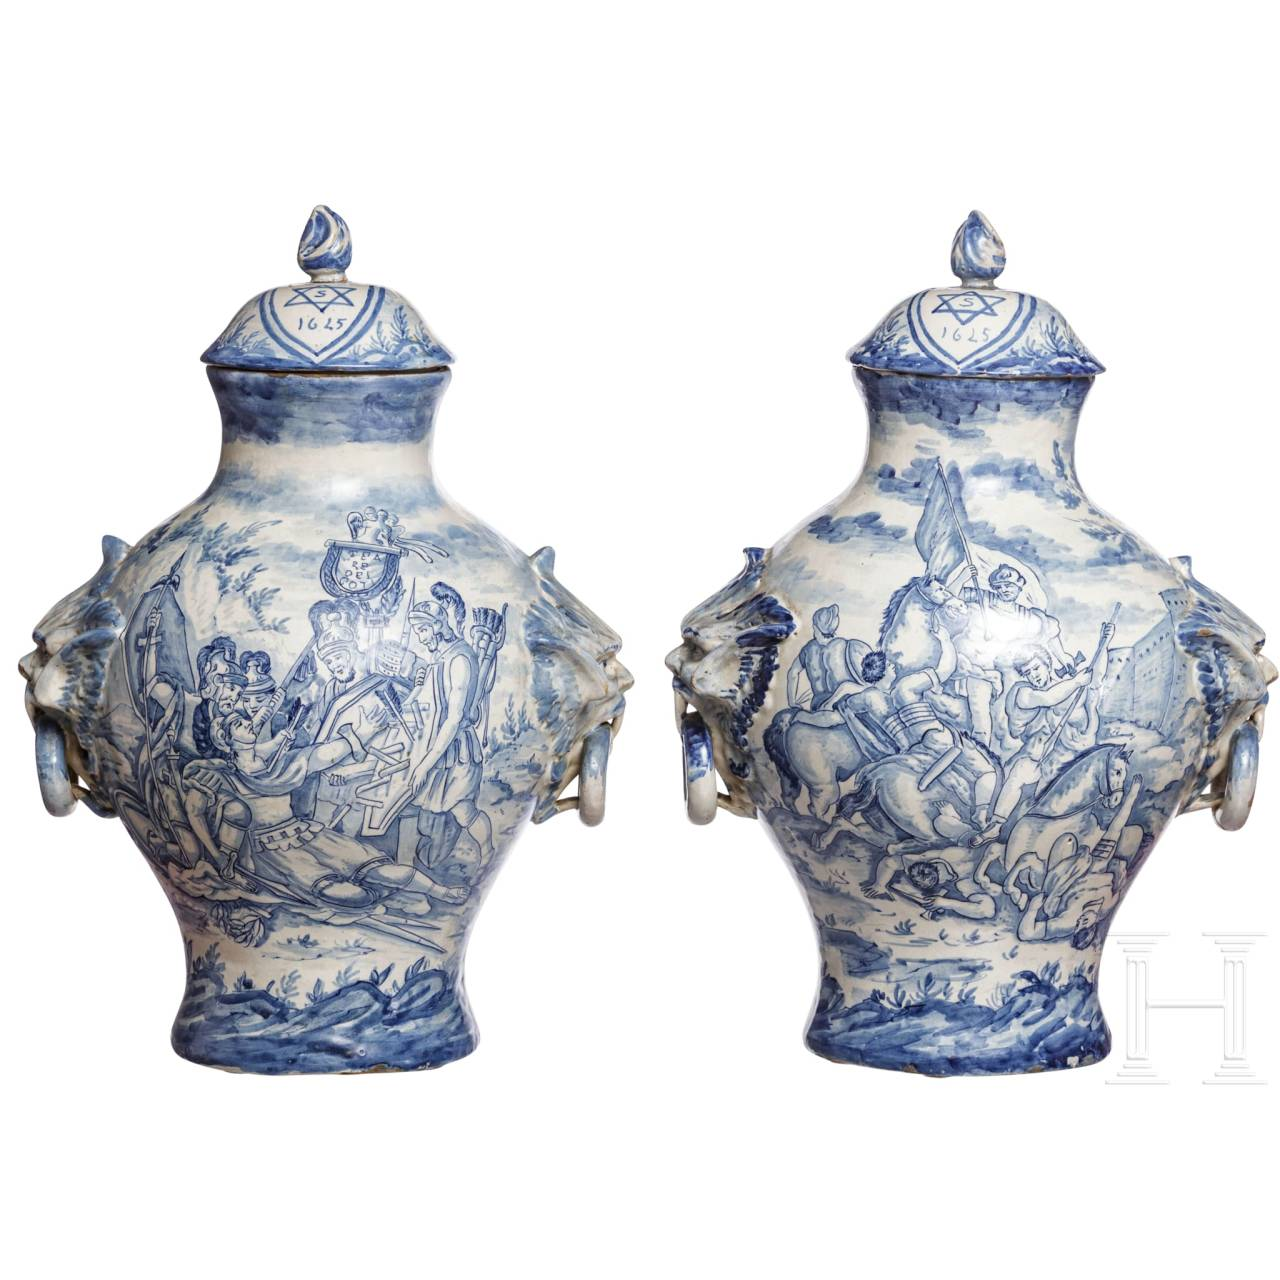 A pair of large Italian Fayance cover vases, 19th century